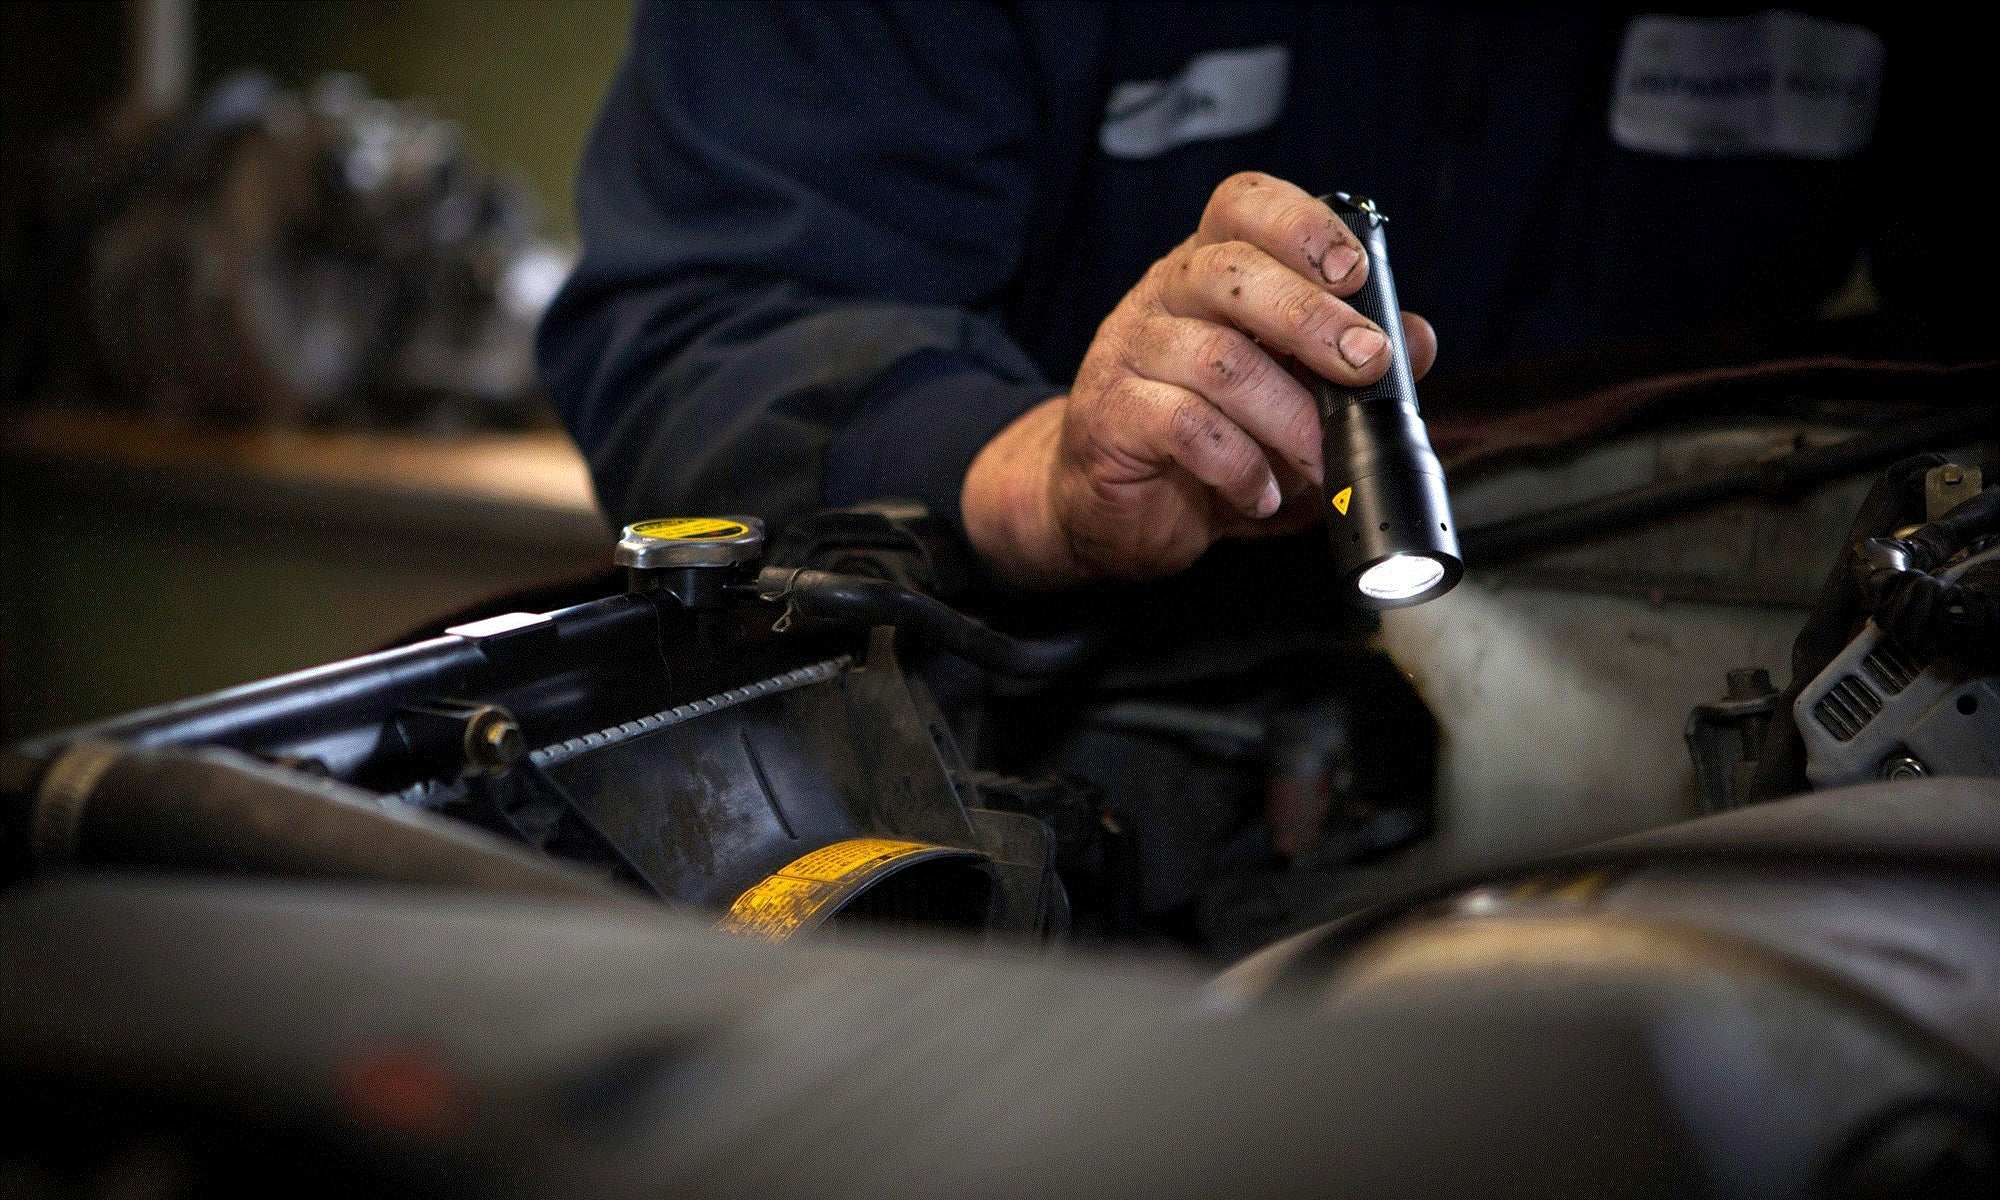 6 DIY Car Repairs Everyone Should Know